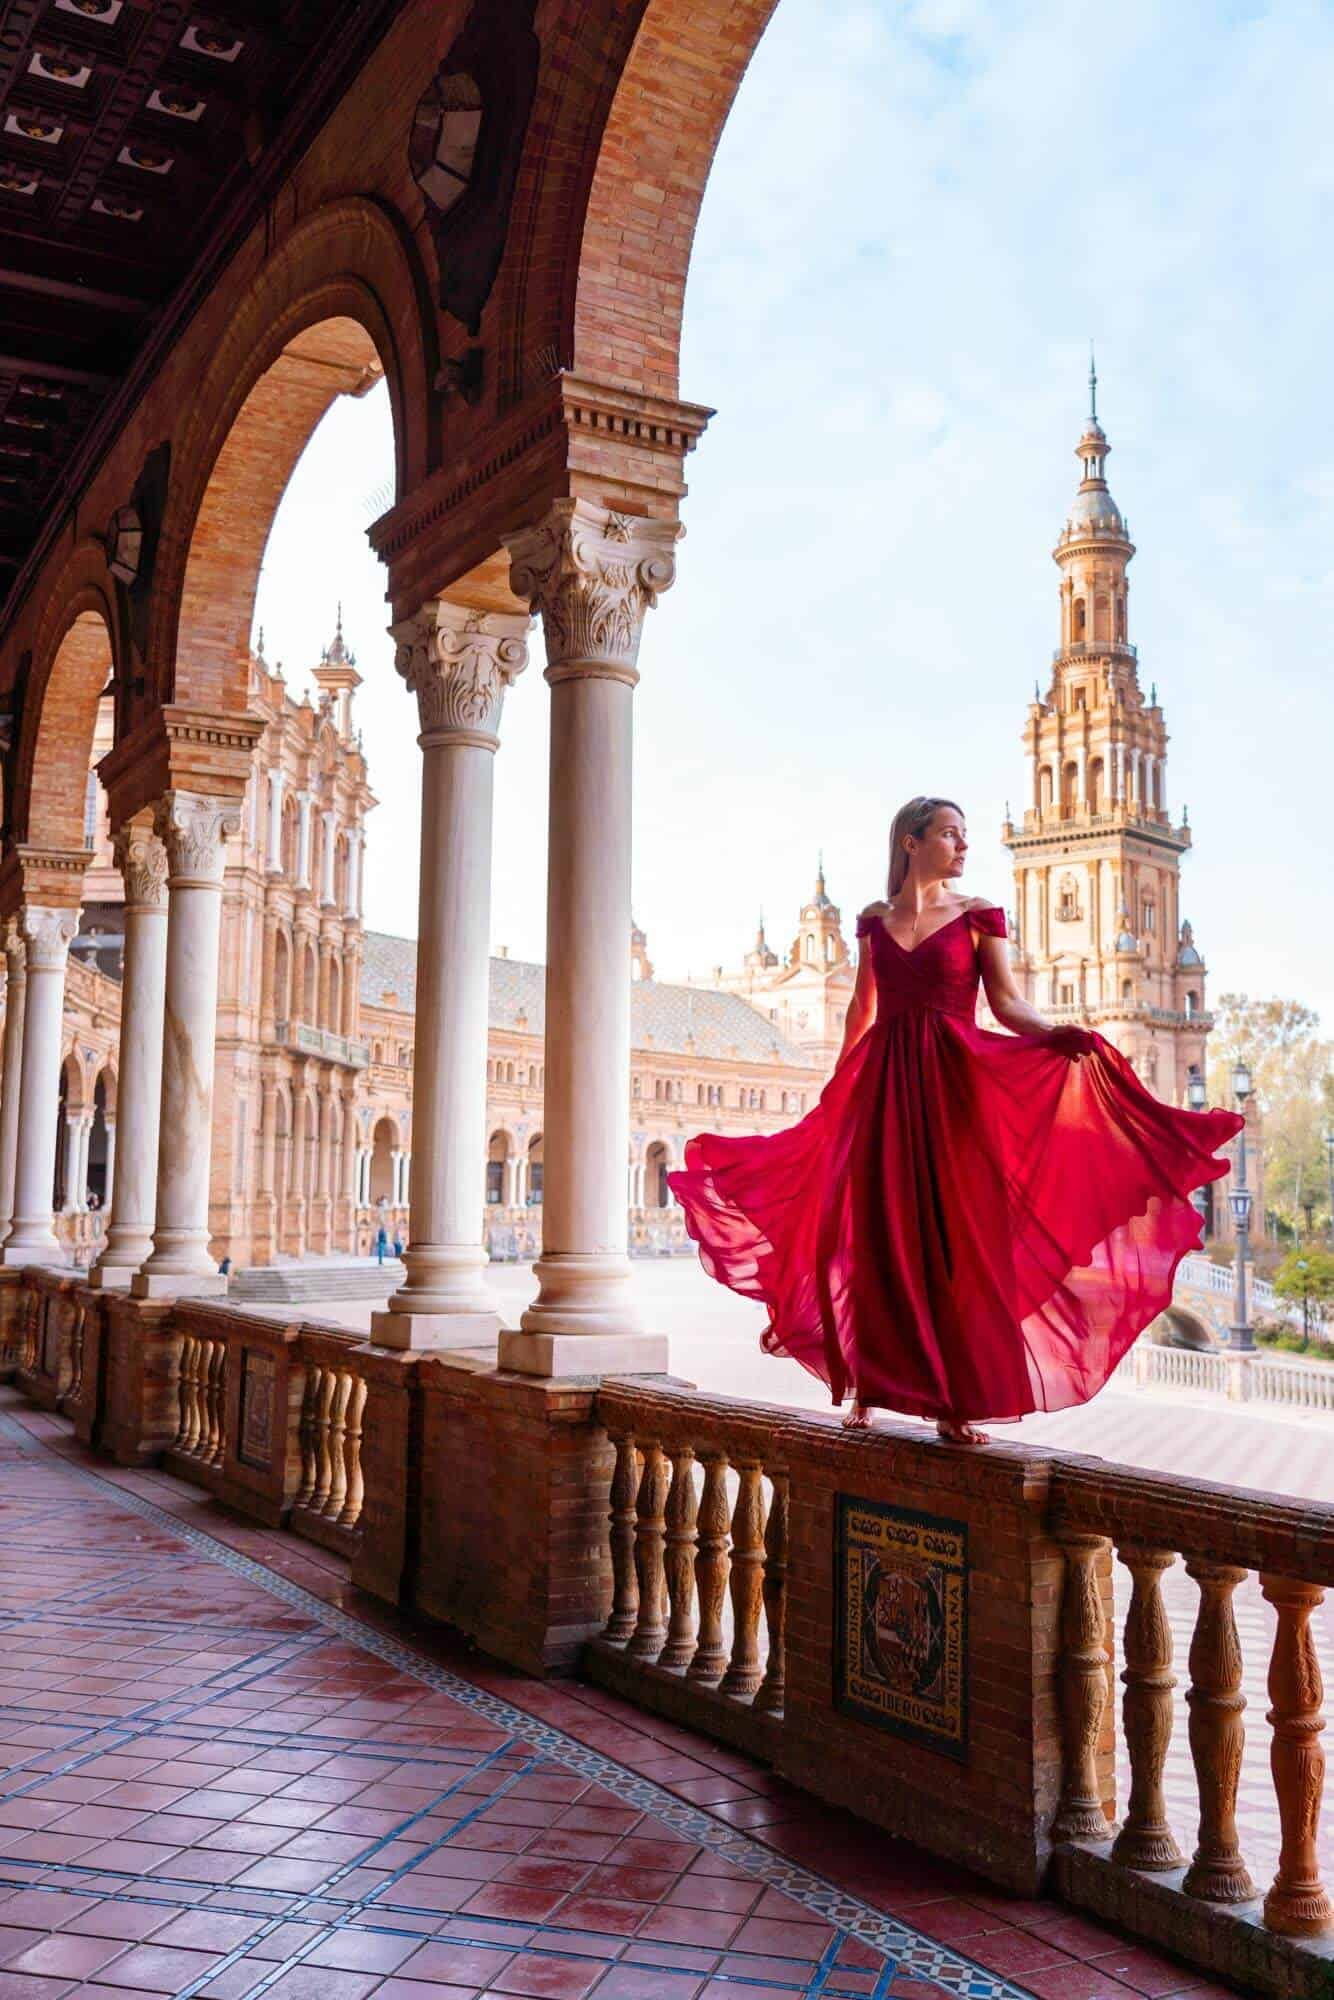 Girl in a red dress at Plaza de España capturing the perfect insta-worthy photo